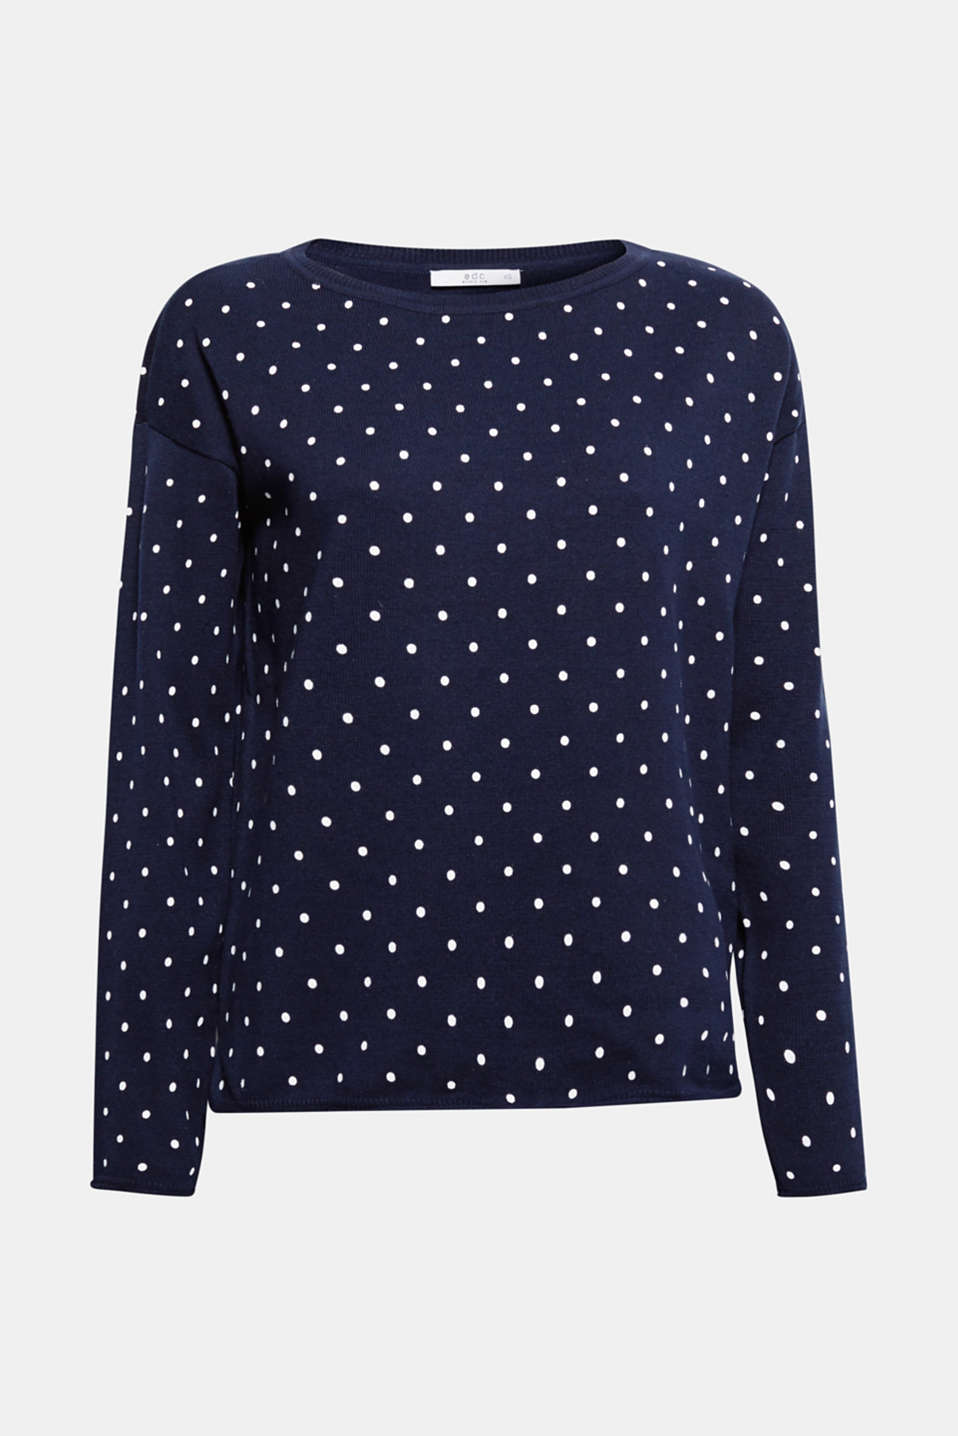 We love polka dots! This jumper is a perfect everyday favourite thanks to the loosely figure-skimming fit, the charming polka dots and the pure cotton fabric.